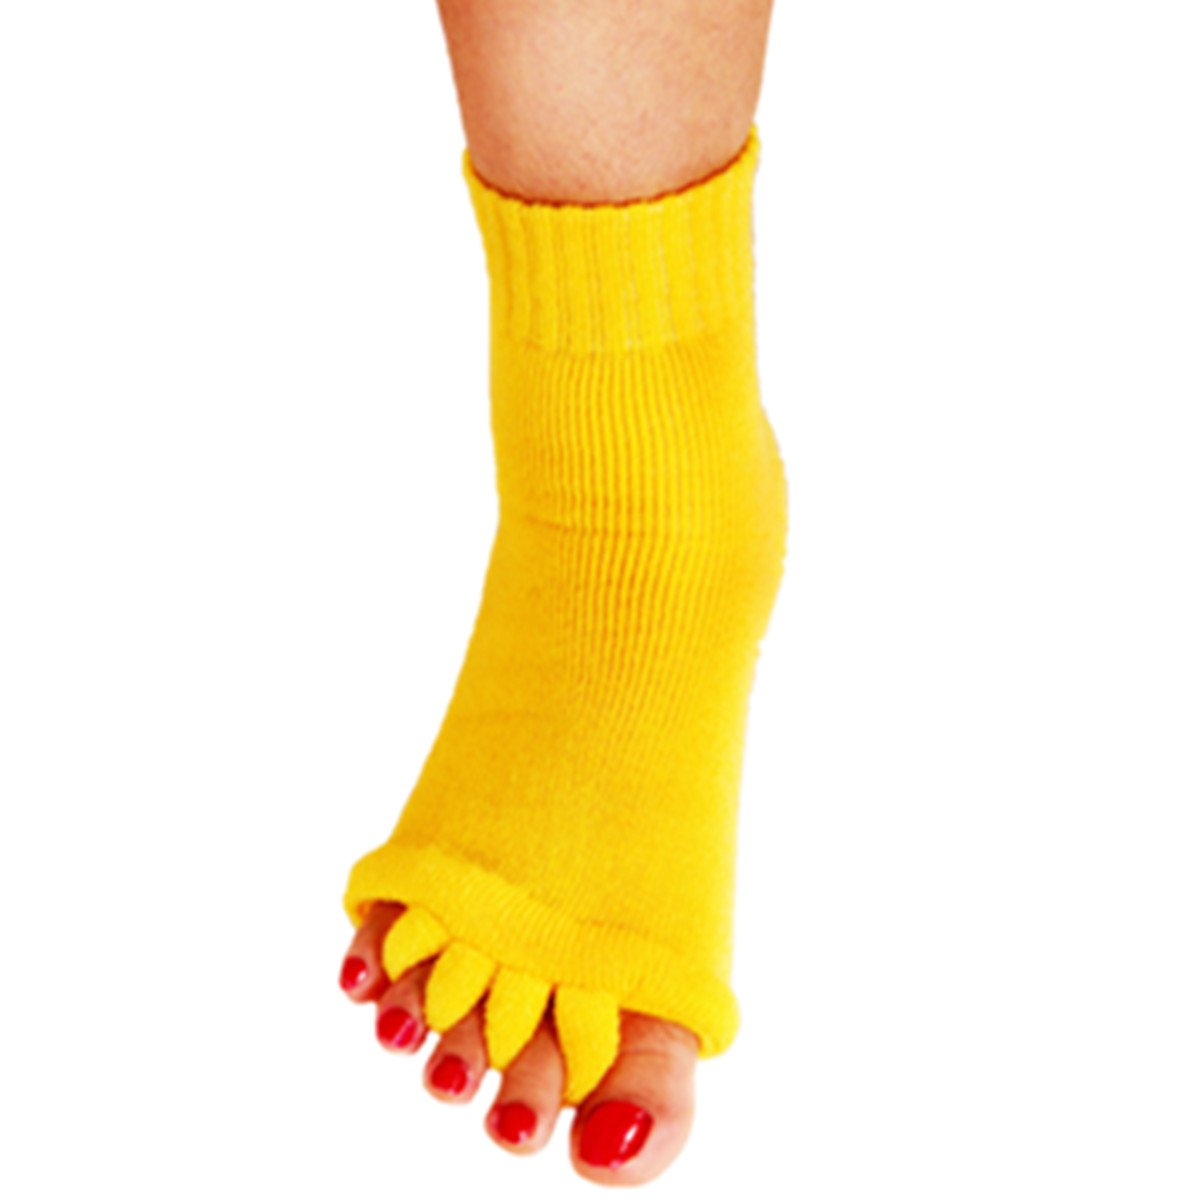 1 Pair Yoga GYM Massage Five Toe Separator Socks Foot Alignment Pain Relief Hot (One Size, A-Yellow)